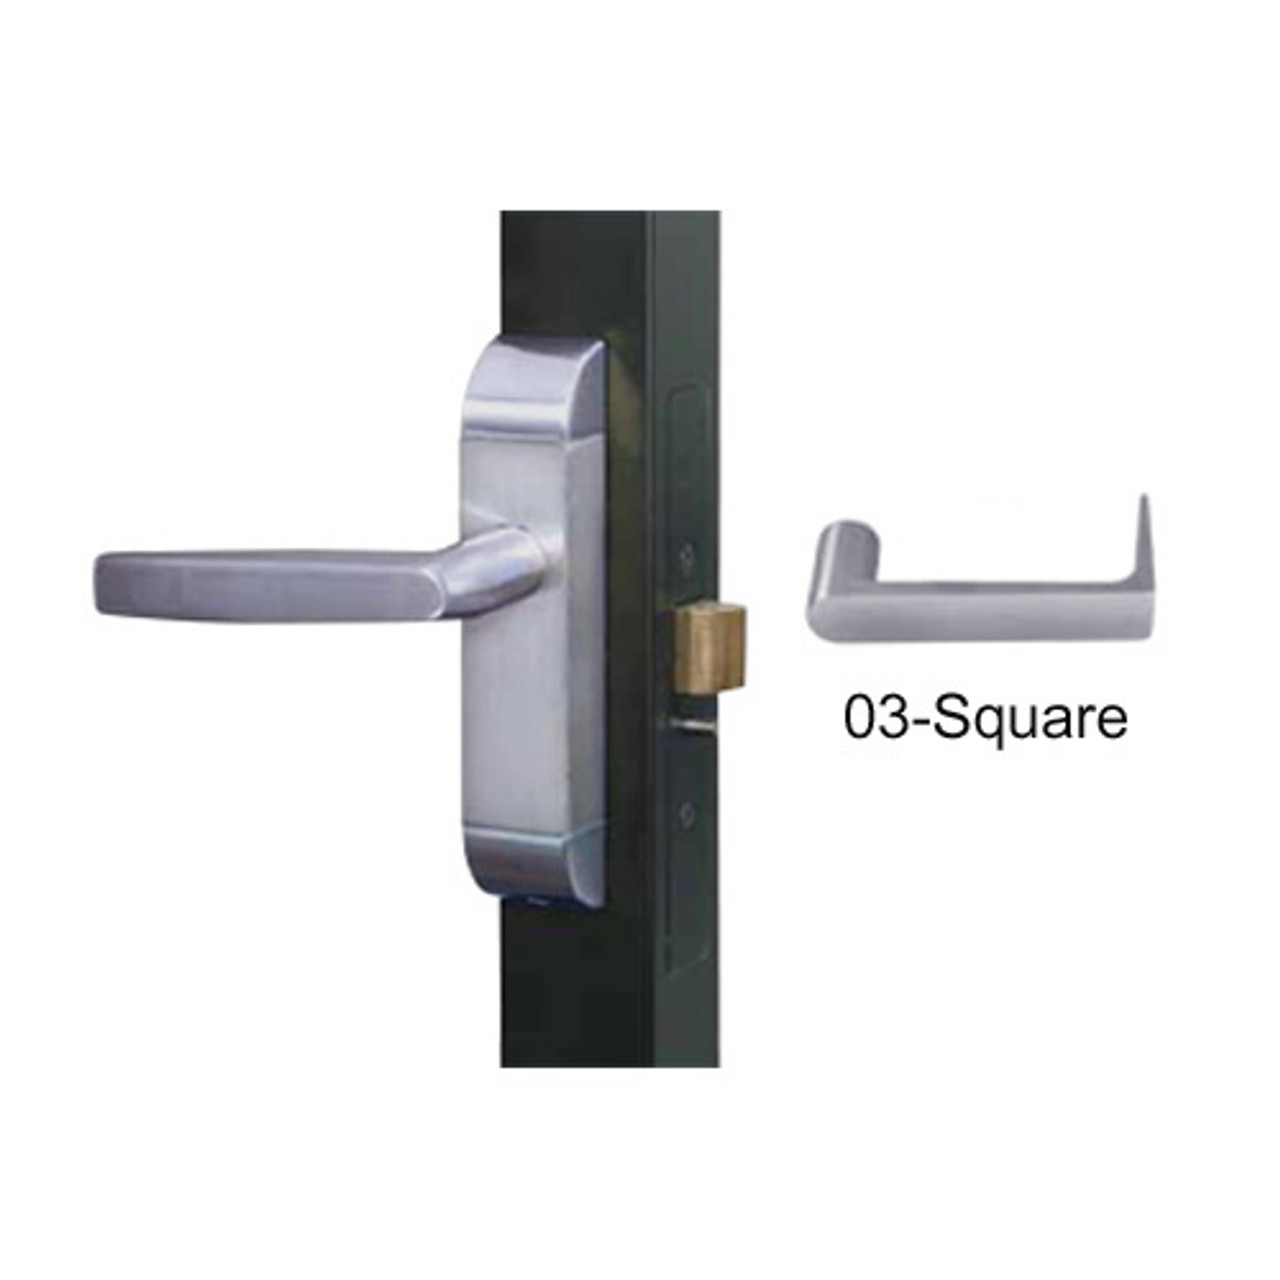 4600M-03-651-US32D Adams Rite Heavy Duty Square Deadlatch Handles in Satin Stainless Finish